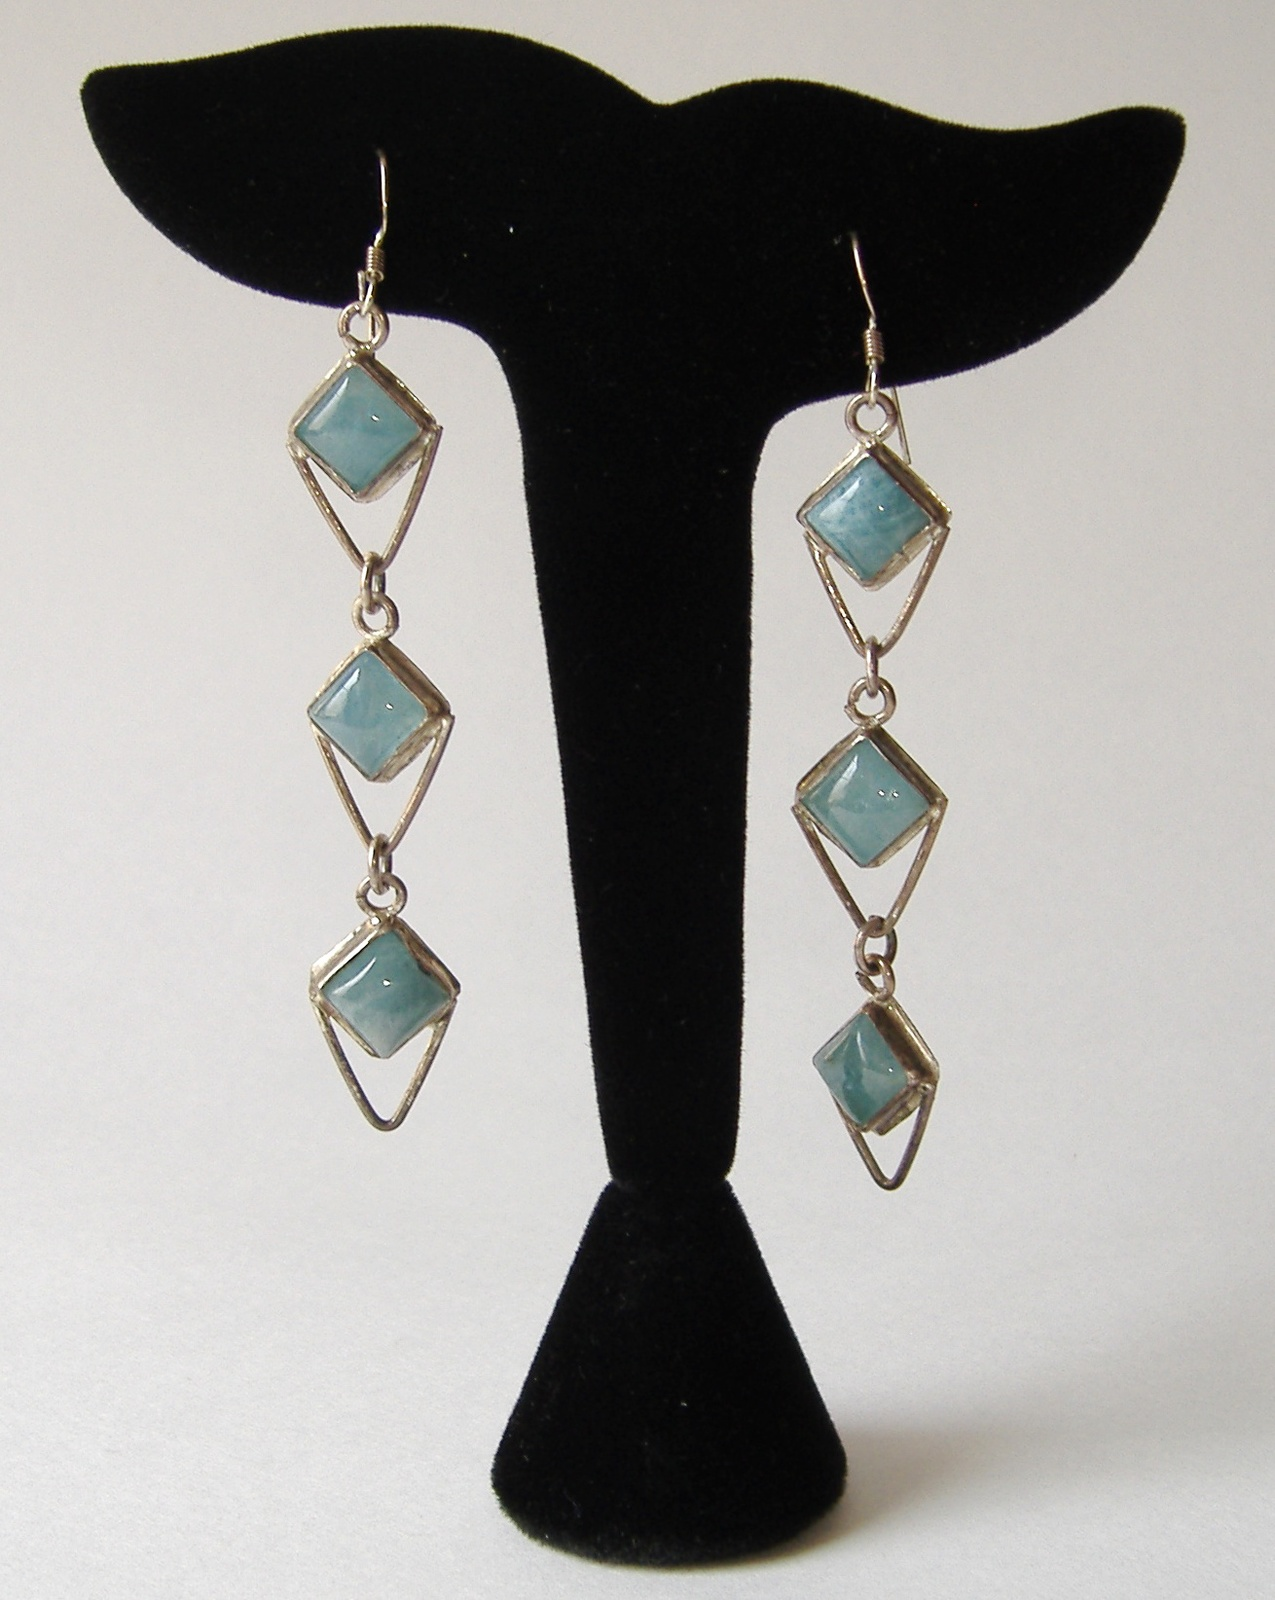 Aquamarine 3 Layer Earrings Sterling Silver Blue Handcrafted Long Dangle